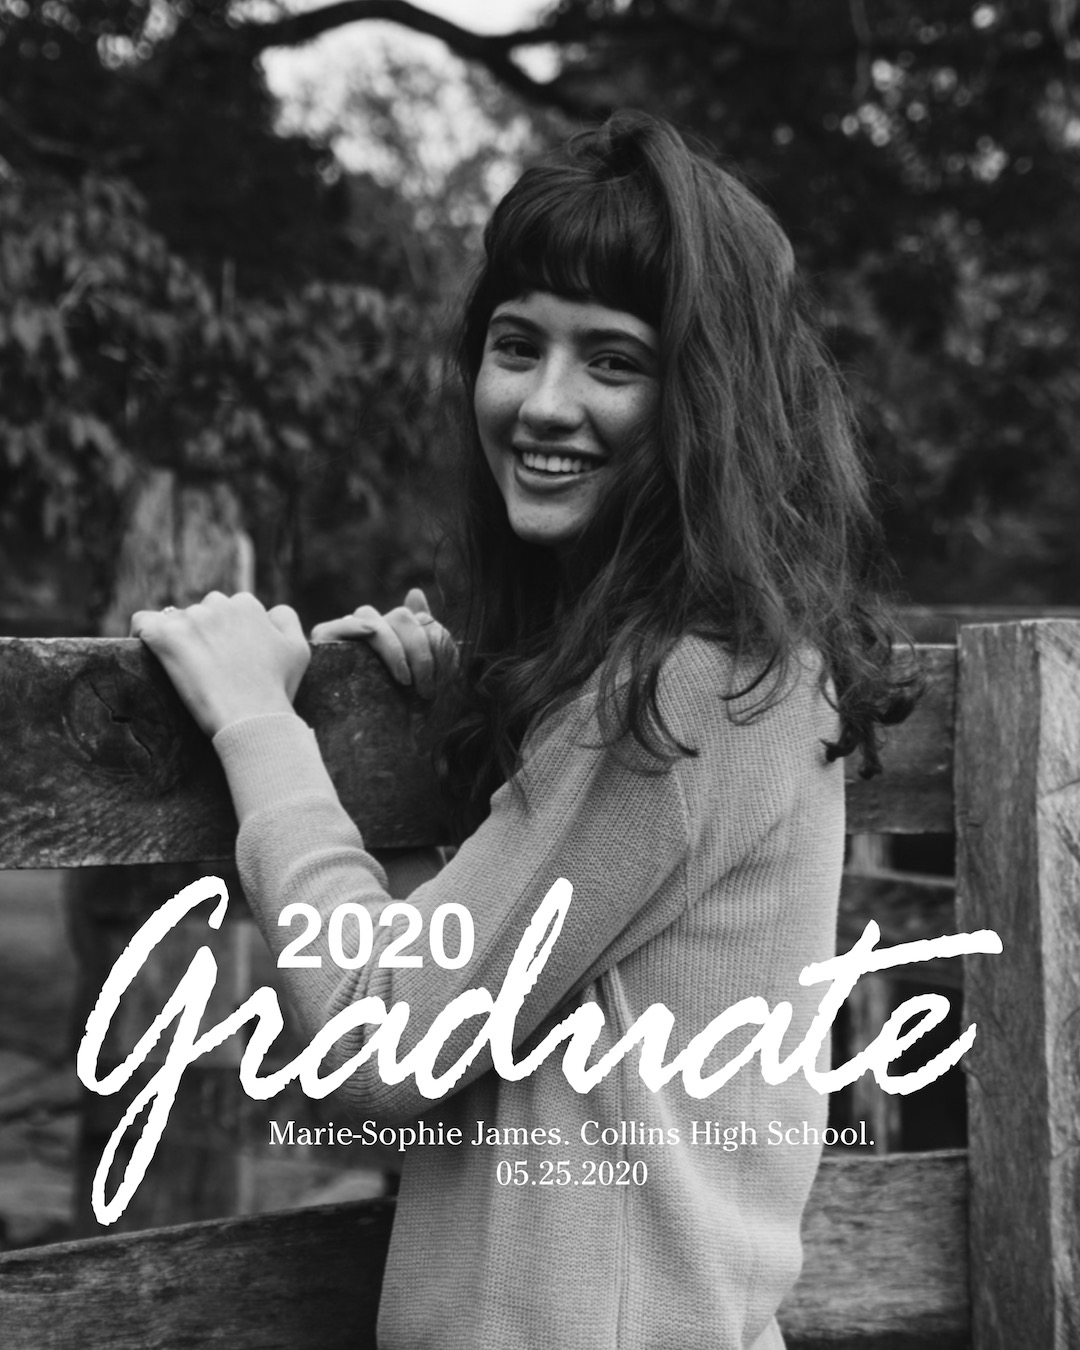 """""""2020 graduate"""" text on black and white girl image card"""